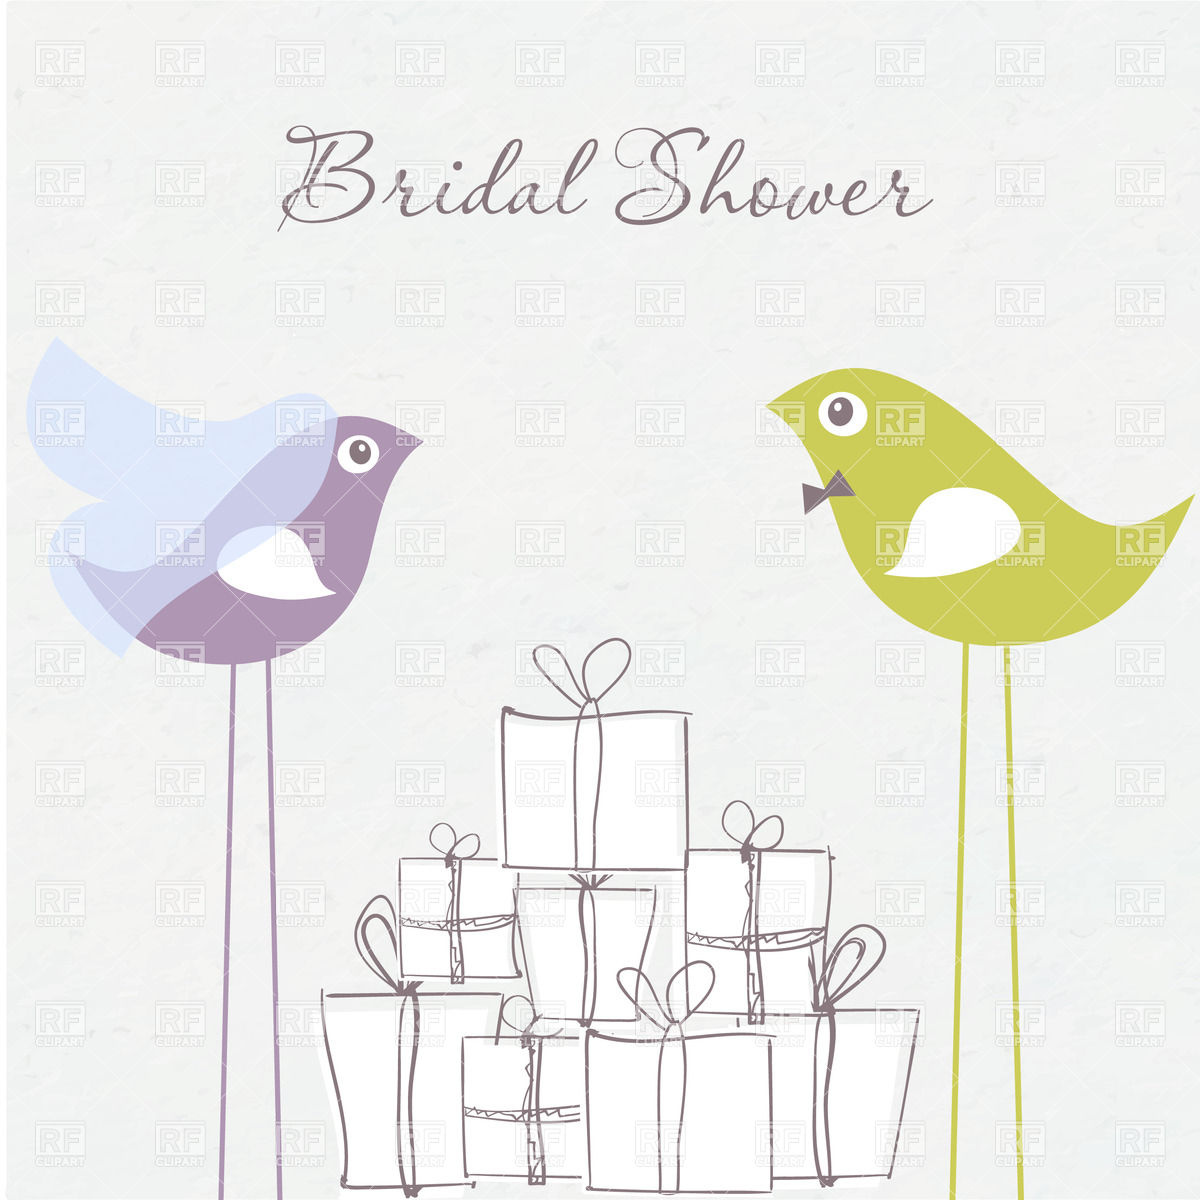 Bridal Shower Invitation Birds In Bride And Groom Costumes And Gift